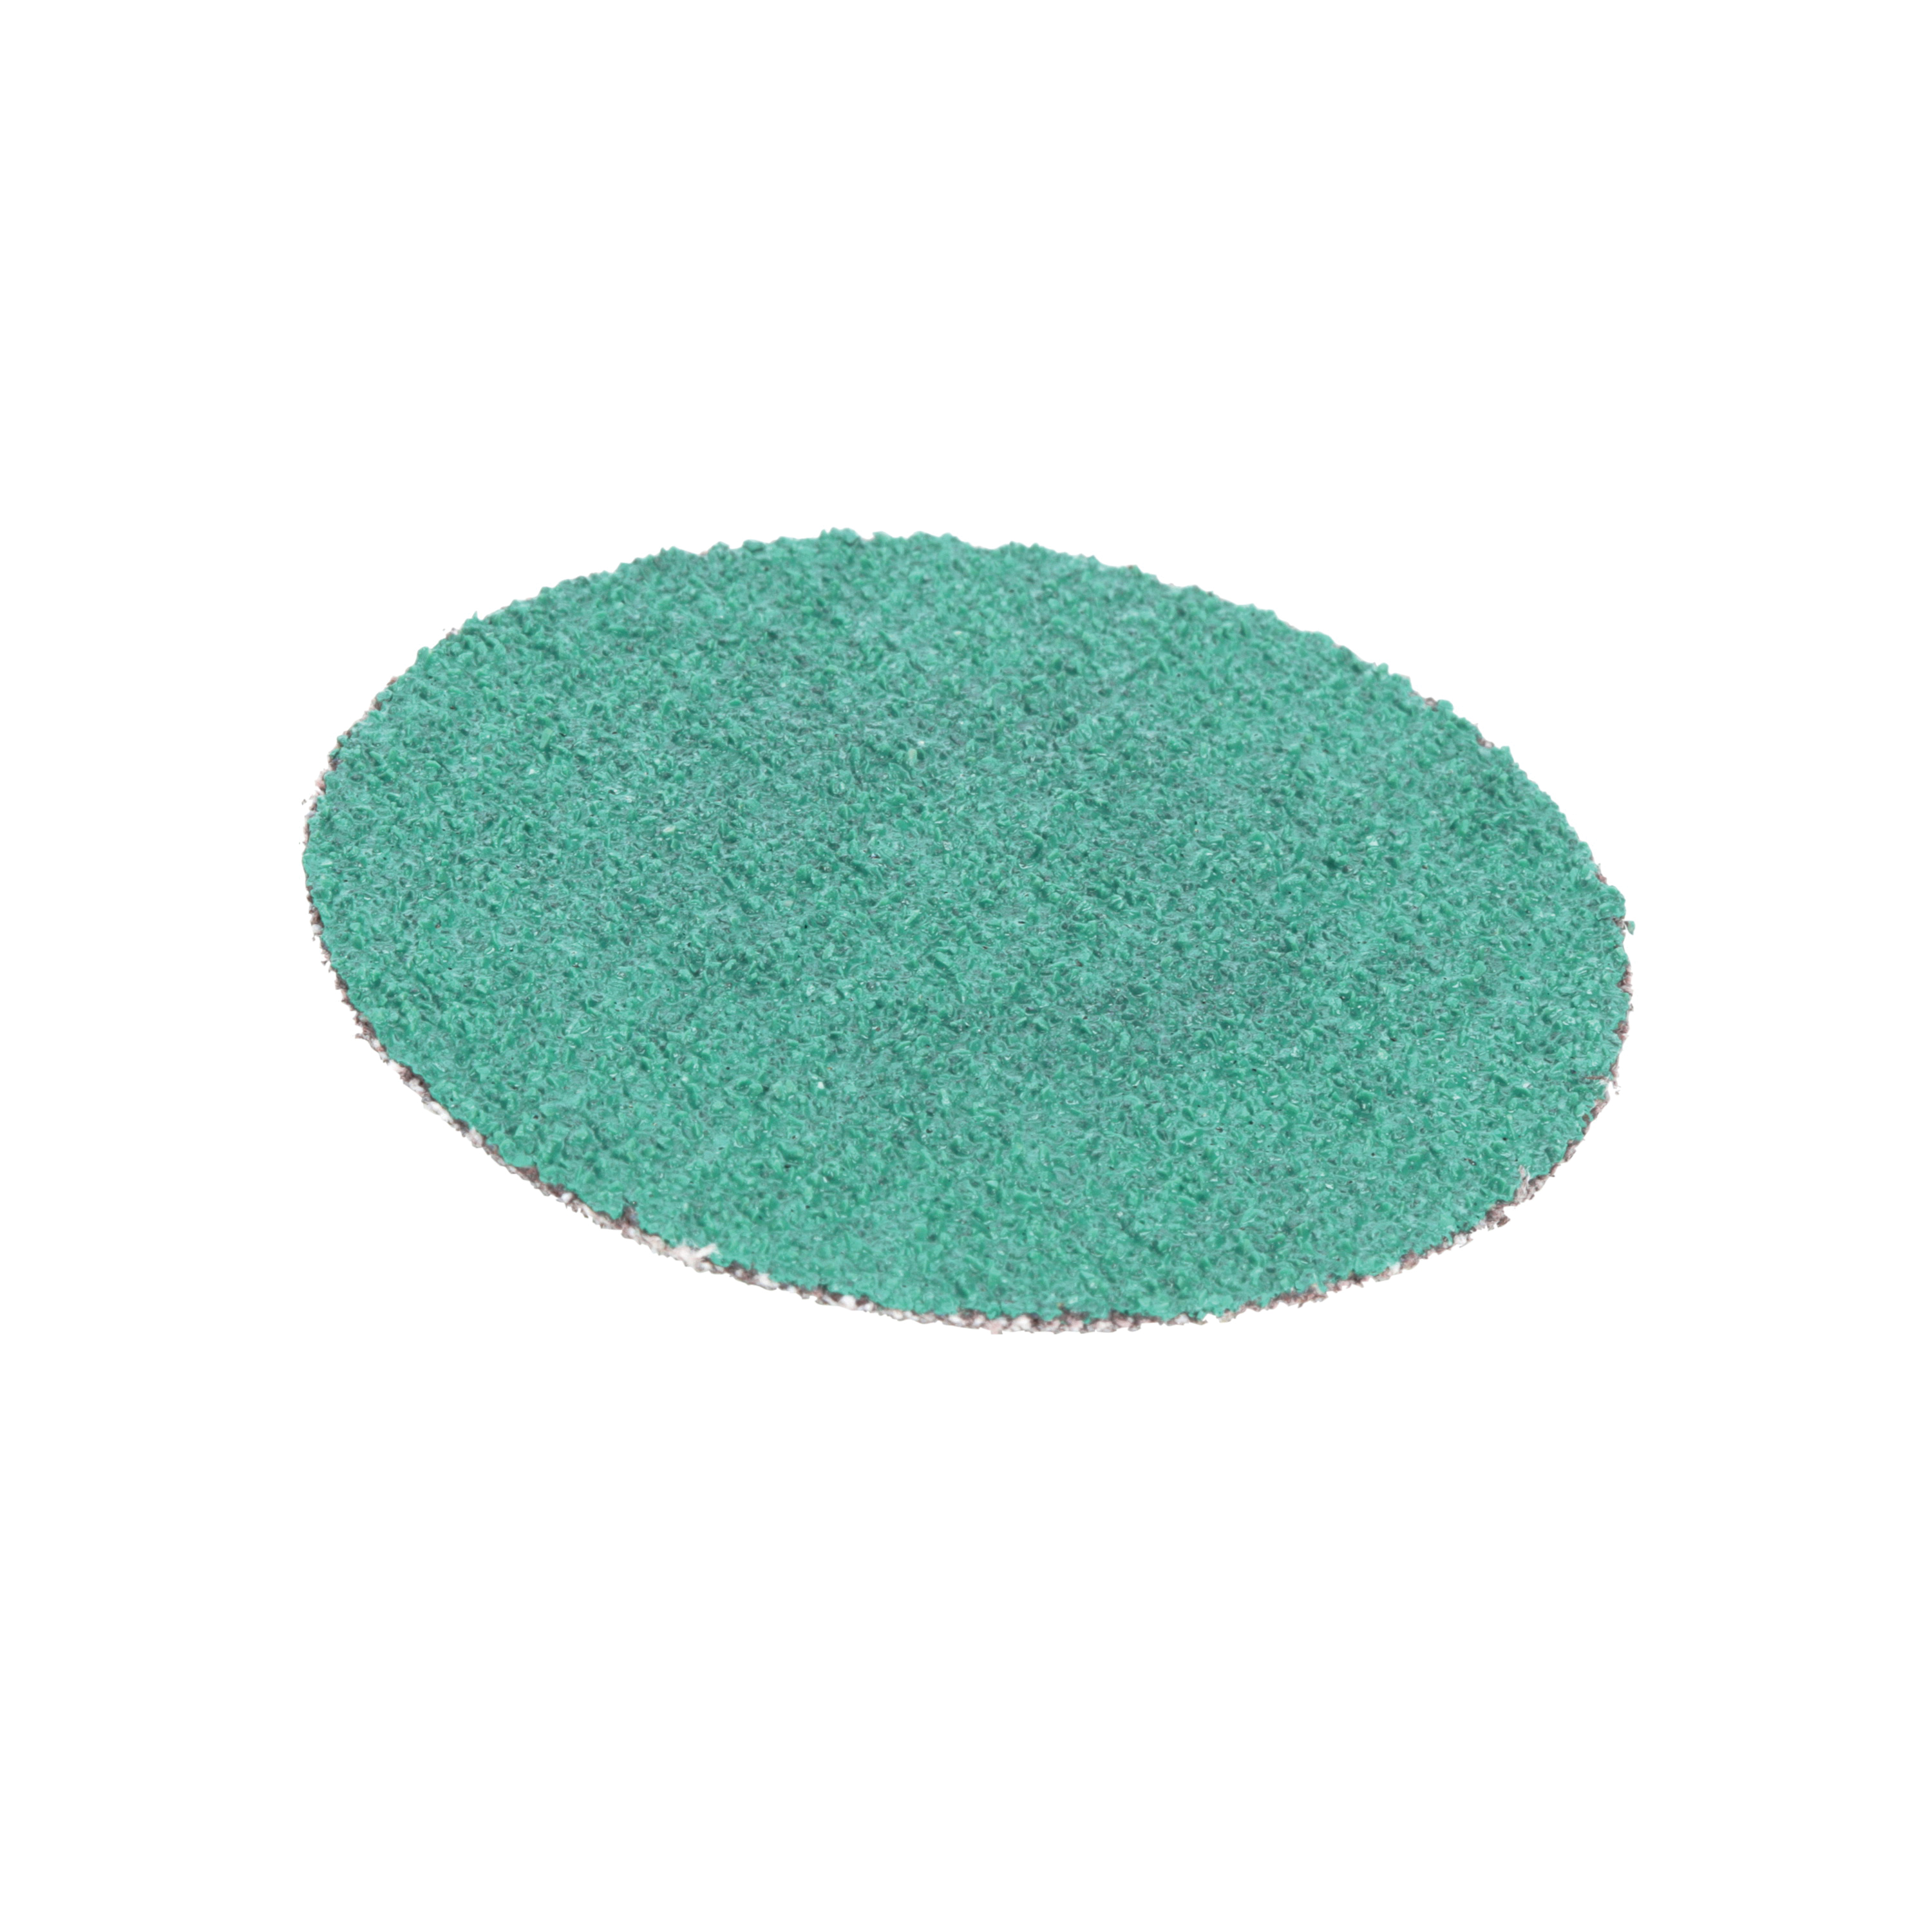 3M™ Green Corps™ Roloc™ 051131-01396 264F Quick-Change Coated Abrasive Disc, 2 in Dia Disc, 50 Grit, Coarse Grade, Aluminum Oxide Abrasive, Roloc™ Attachment